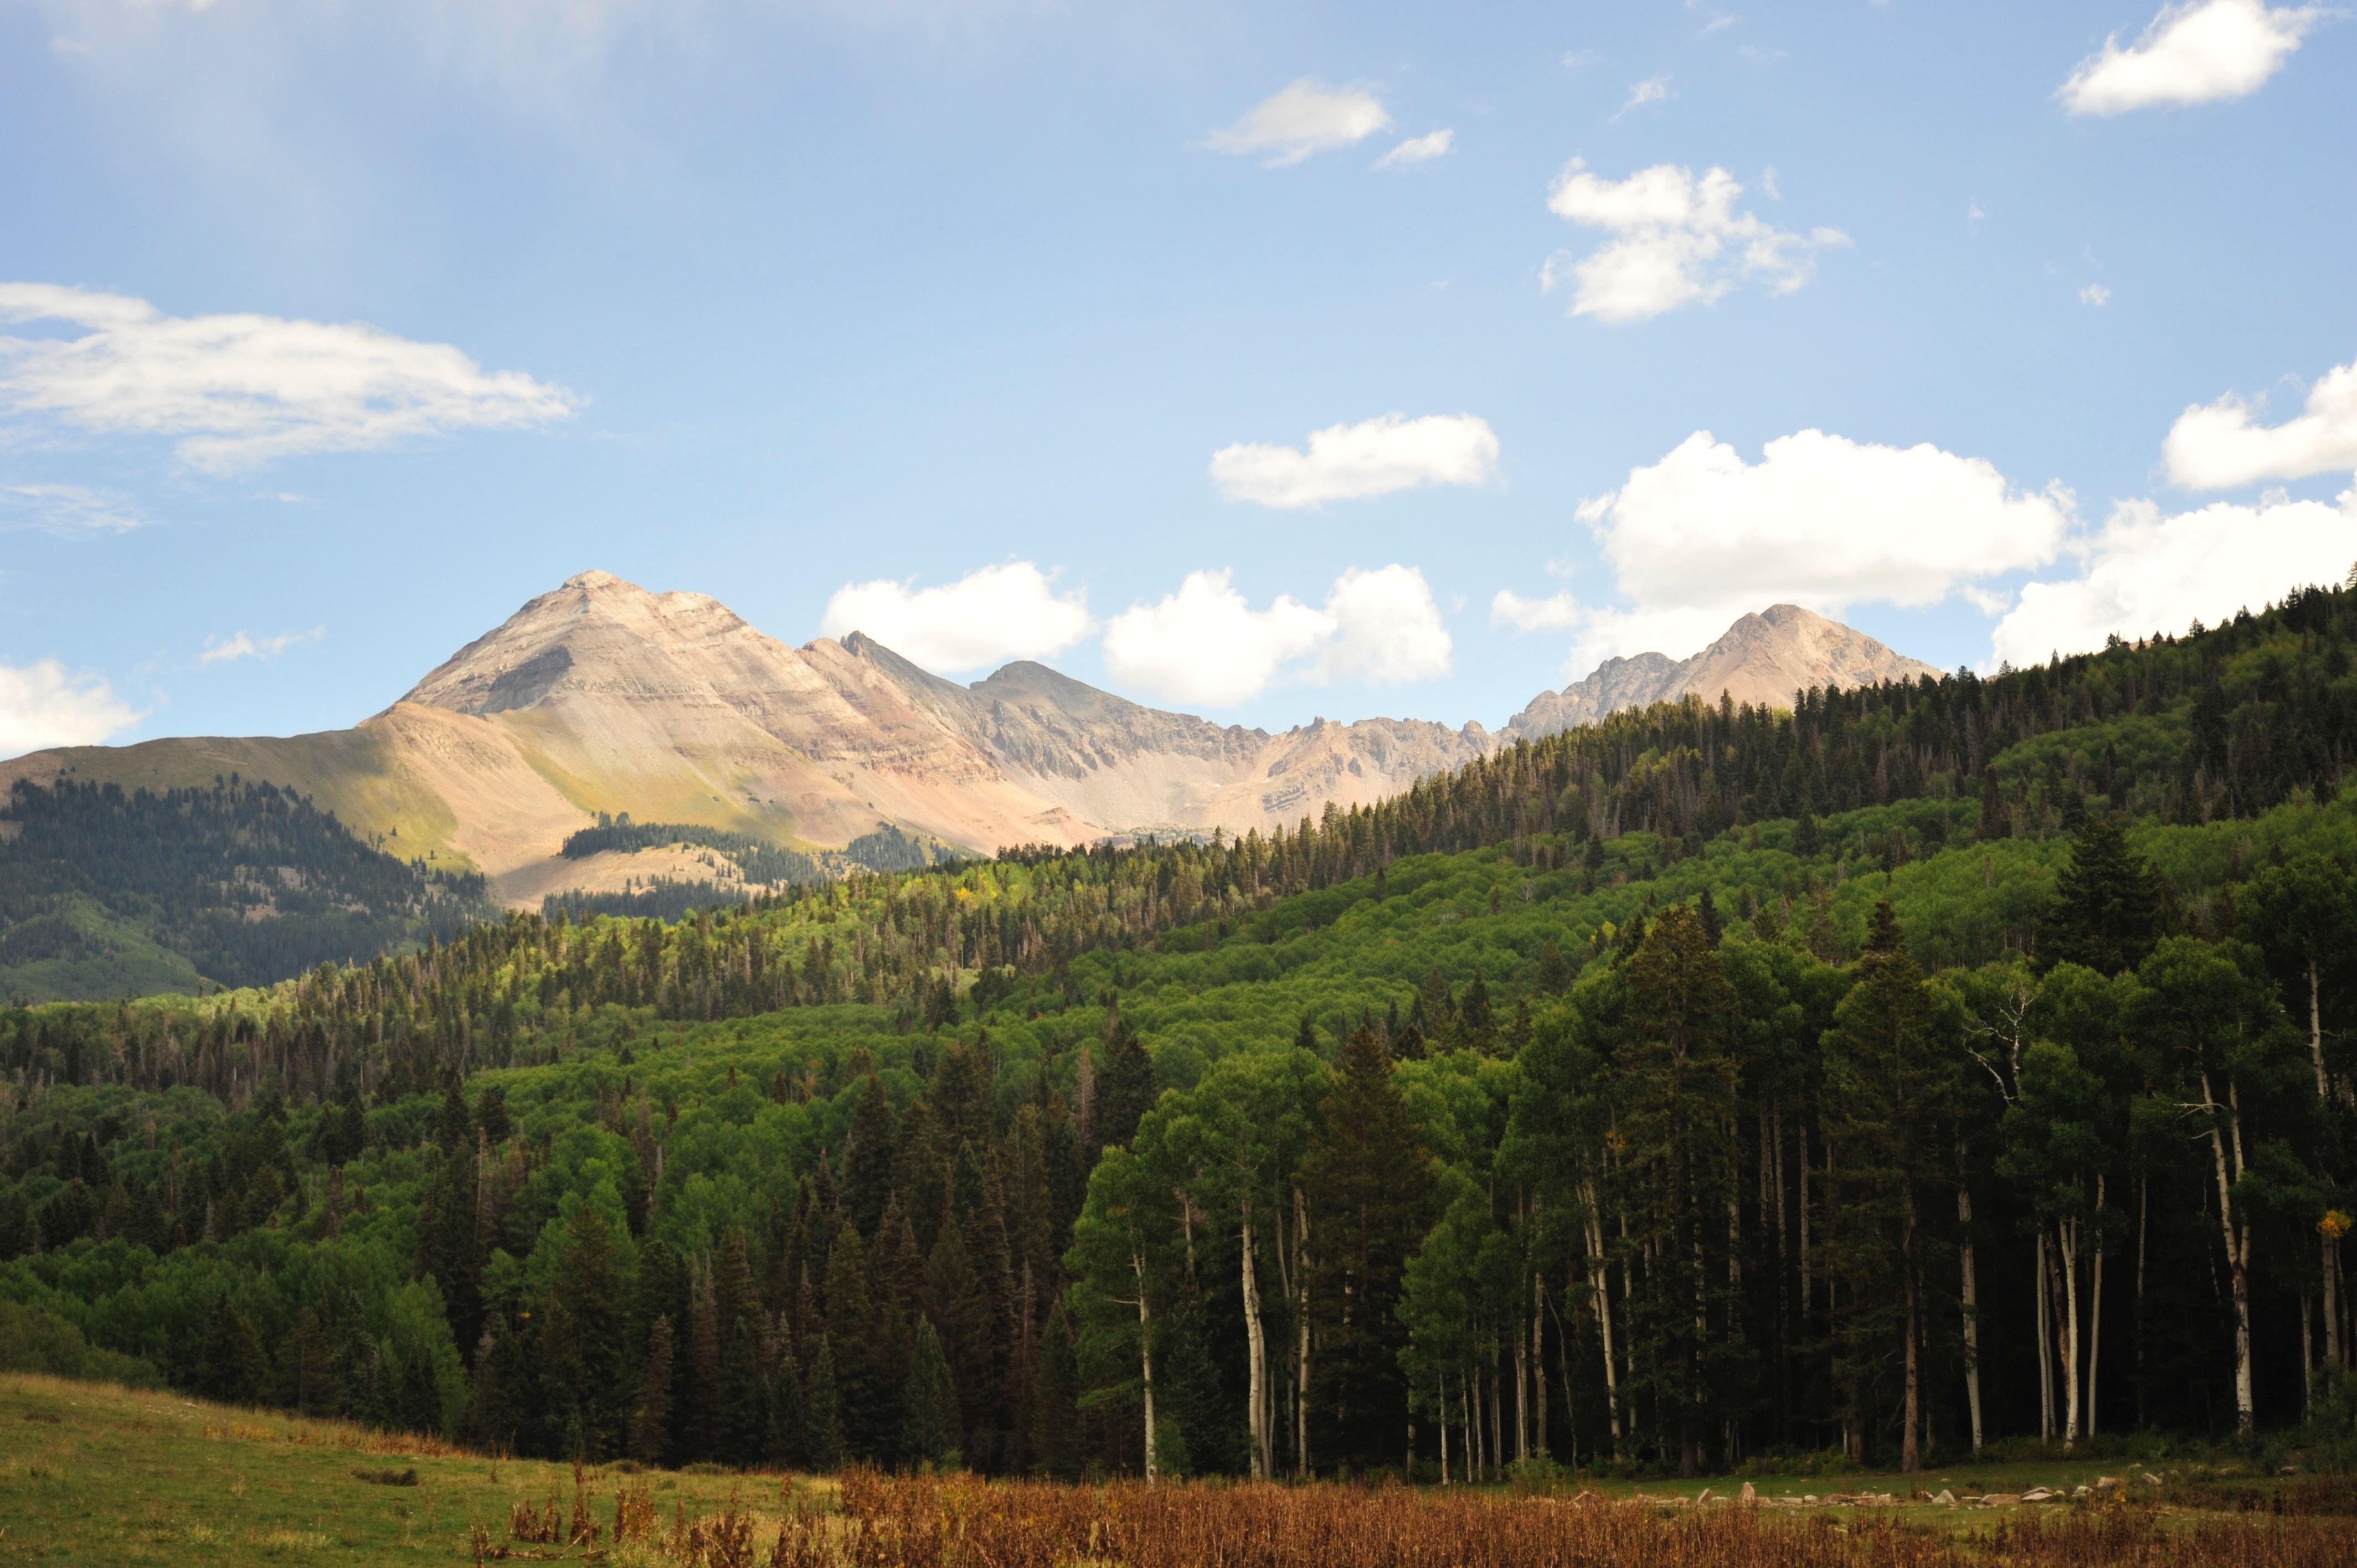 Subalpine forests of the Colorado Rockies are expected to be strongly affected by climate change. Photo courtesy of Lee Anderegg.